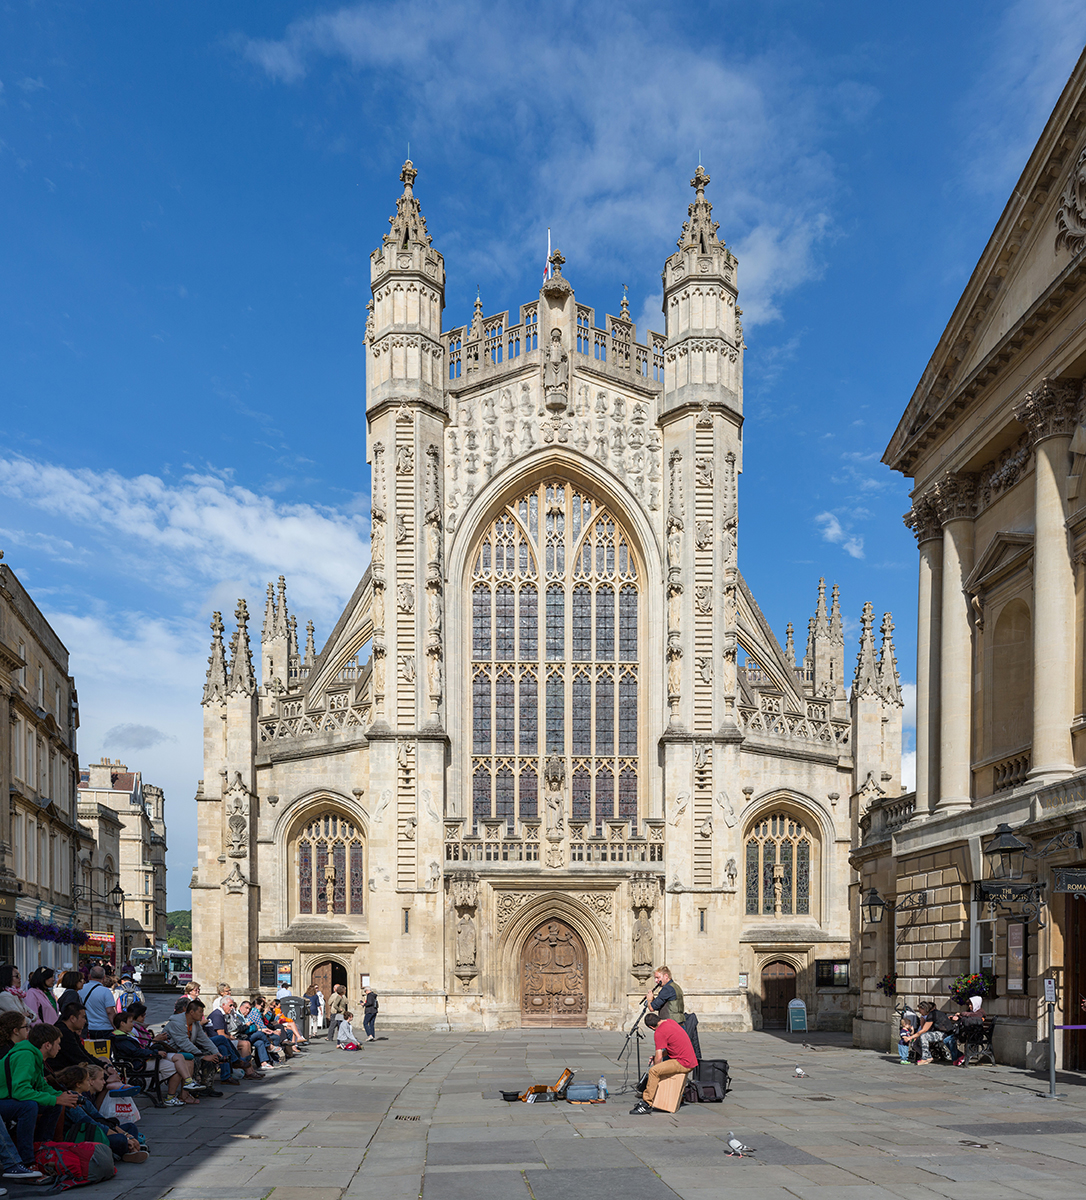 Georgian architecture, hot springs among gems in Bath